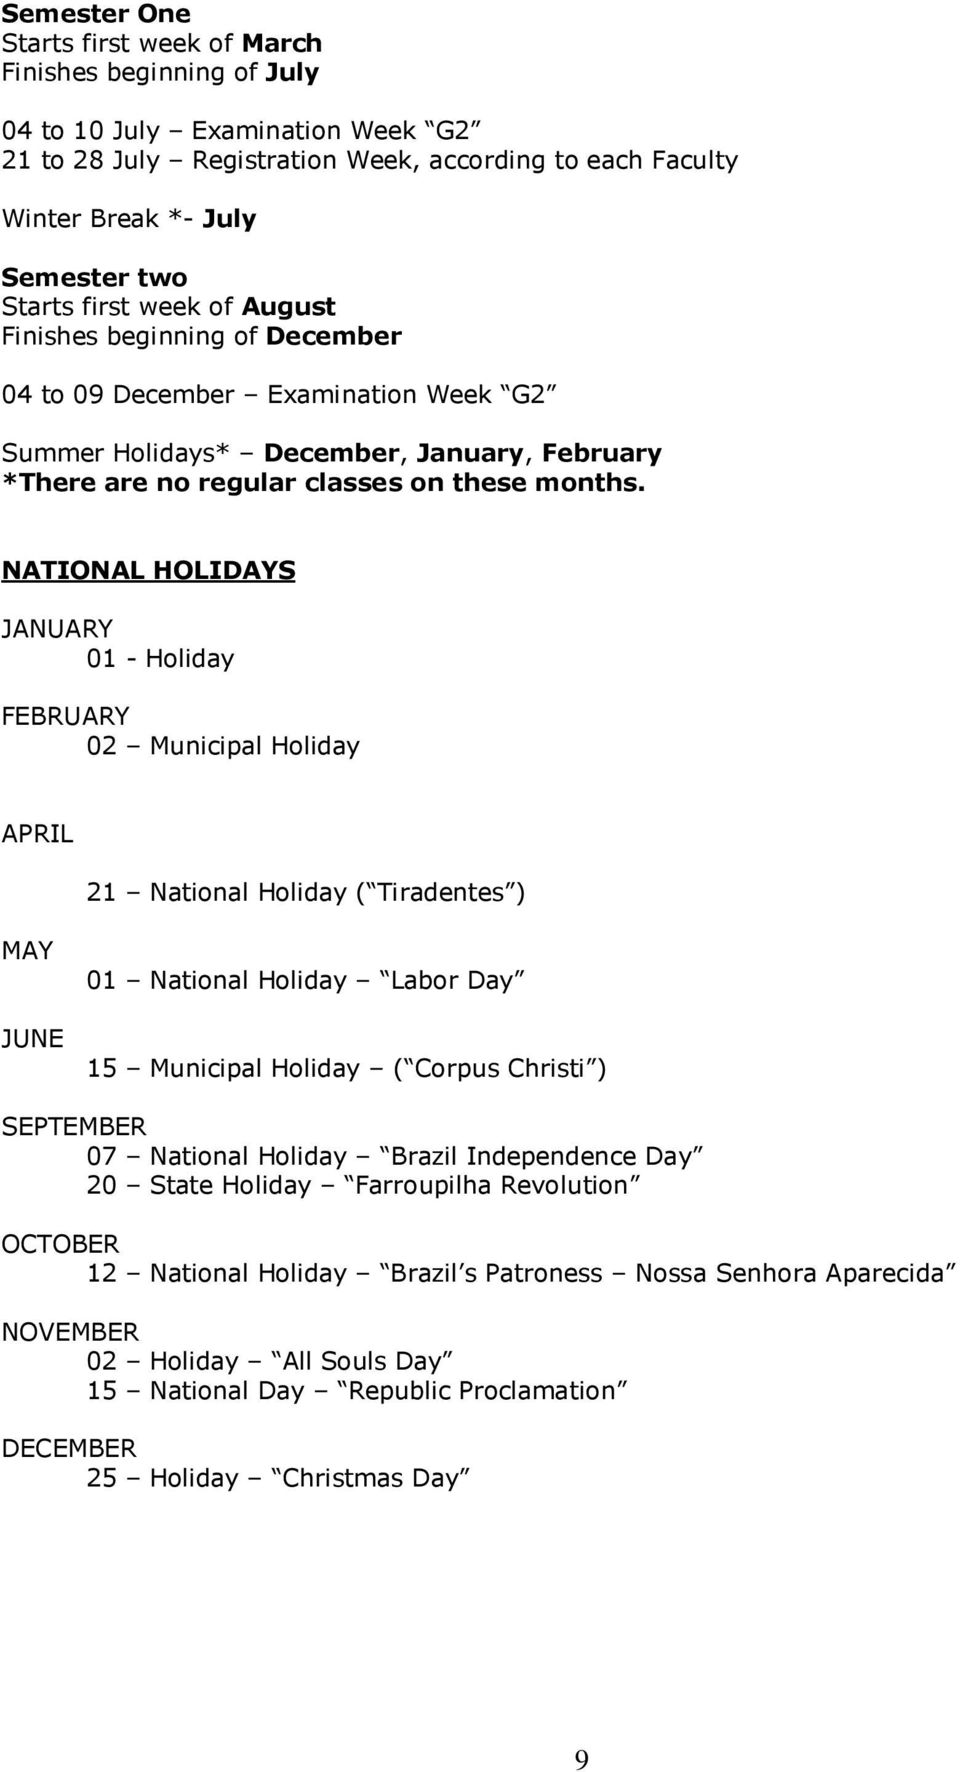 NATIONAL HOLIDAYS JANUARY 01 - Holiday FEBRUARY 02 Municipal Holiday APRIL 21 National Holiday ( Tiradentes ) MAY JUNE 01 National Holiday Labor Day 15 Municipal Holiday ( Corpus Christi ) SEPTEMBER